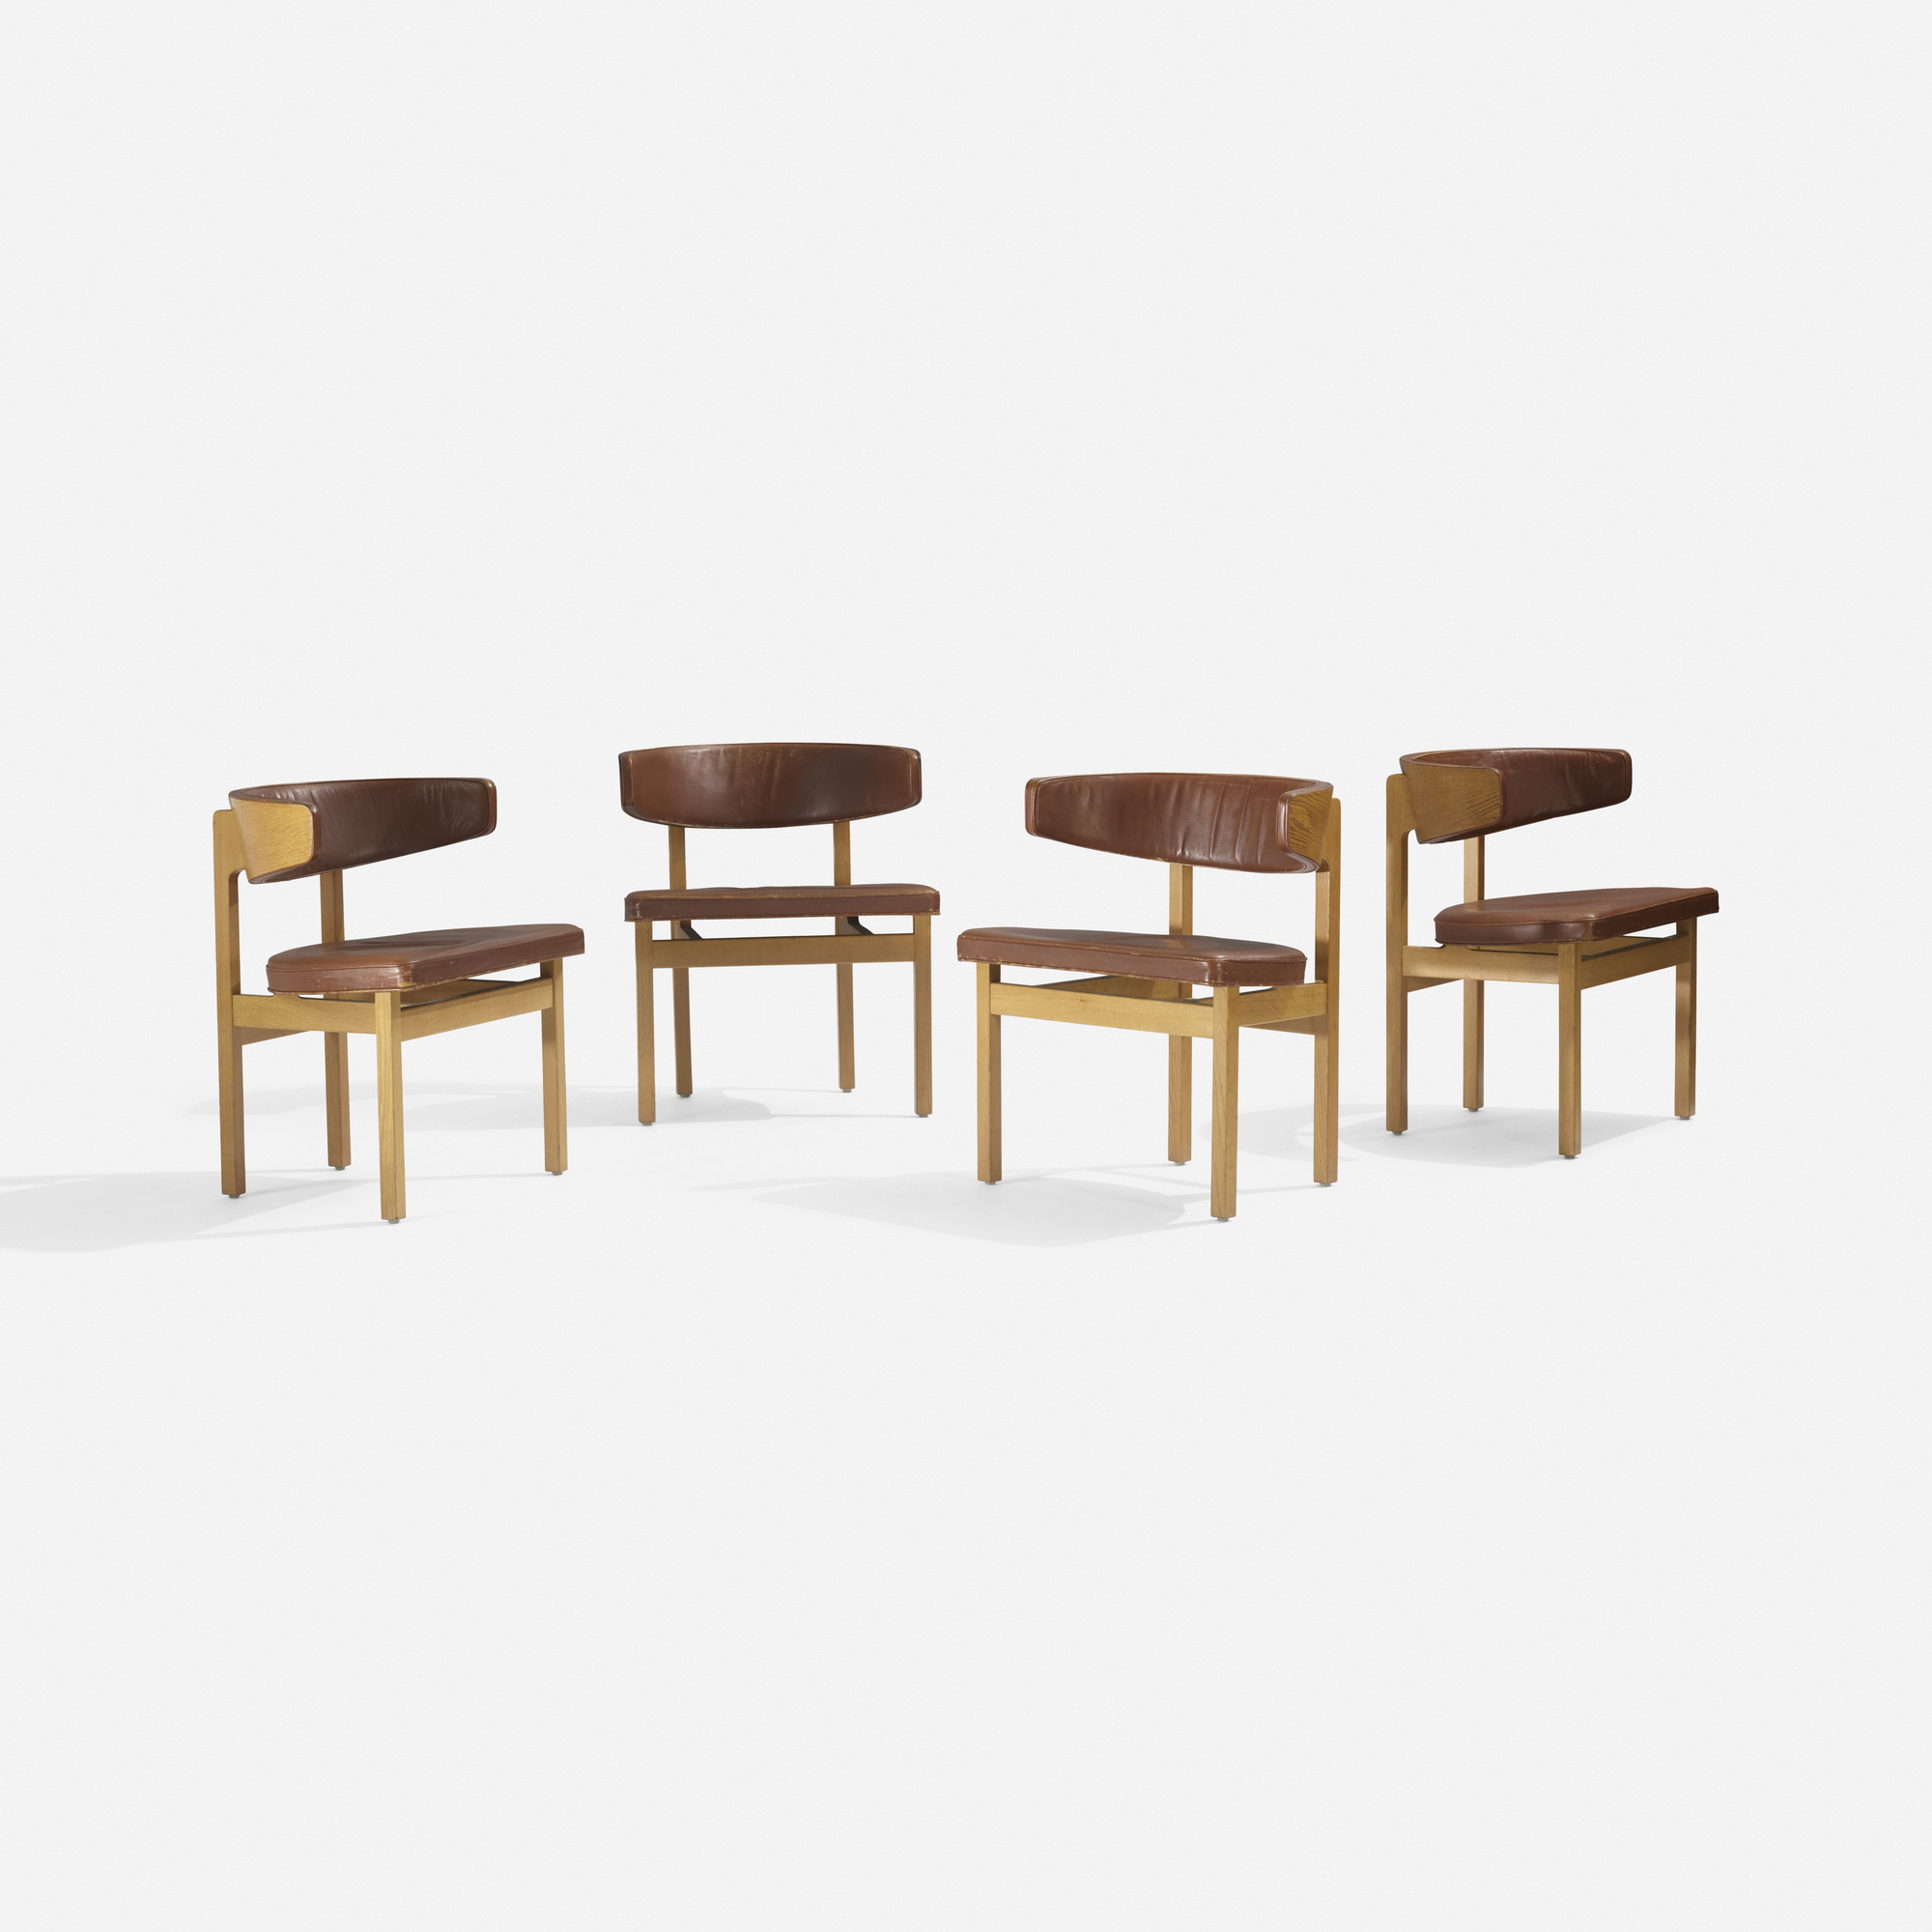 240: Børge Mogensen / Conference chairs, set of four (1 of 4)